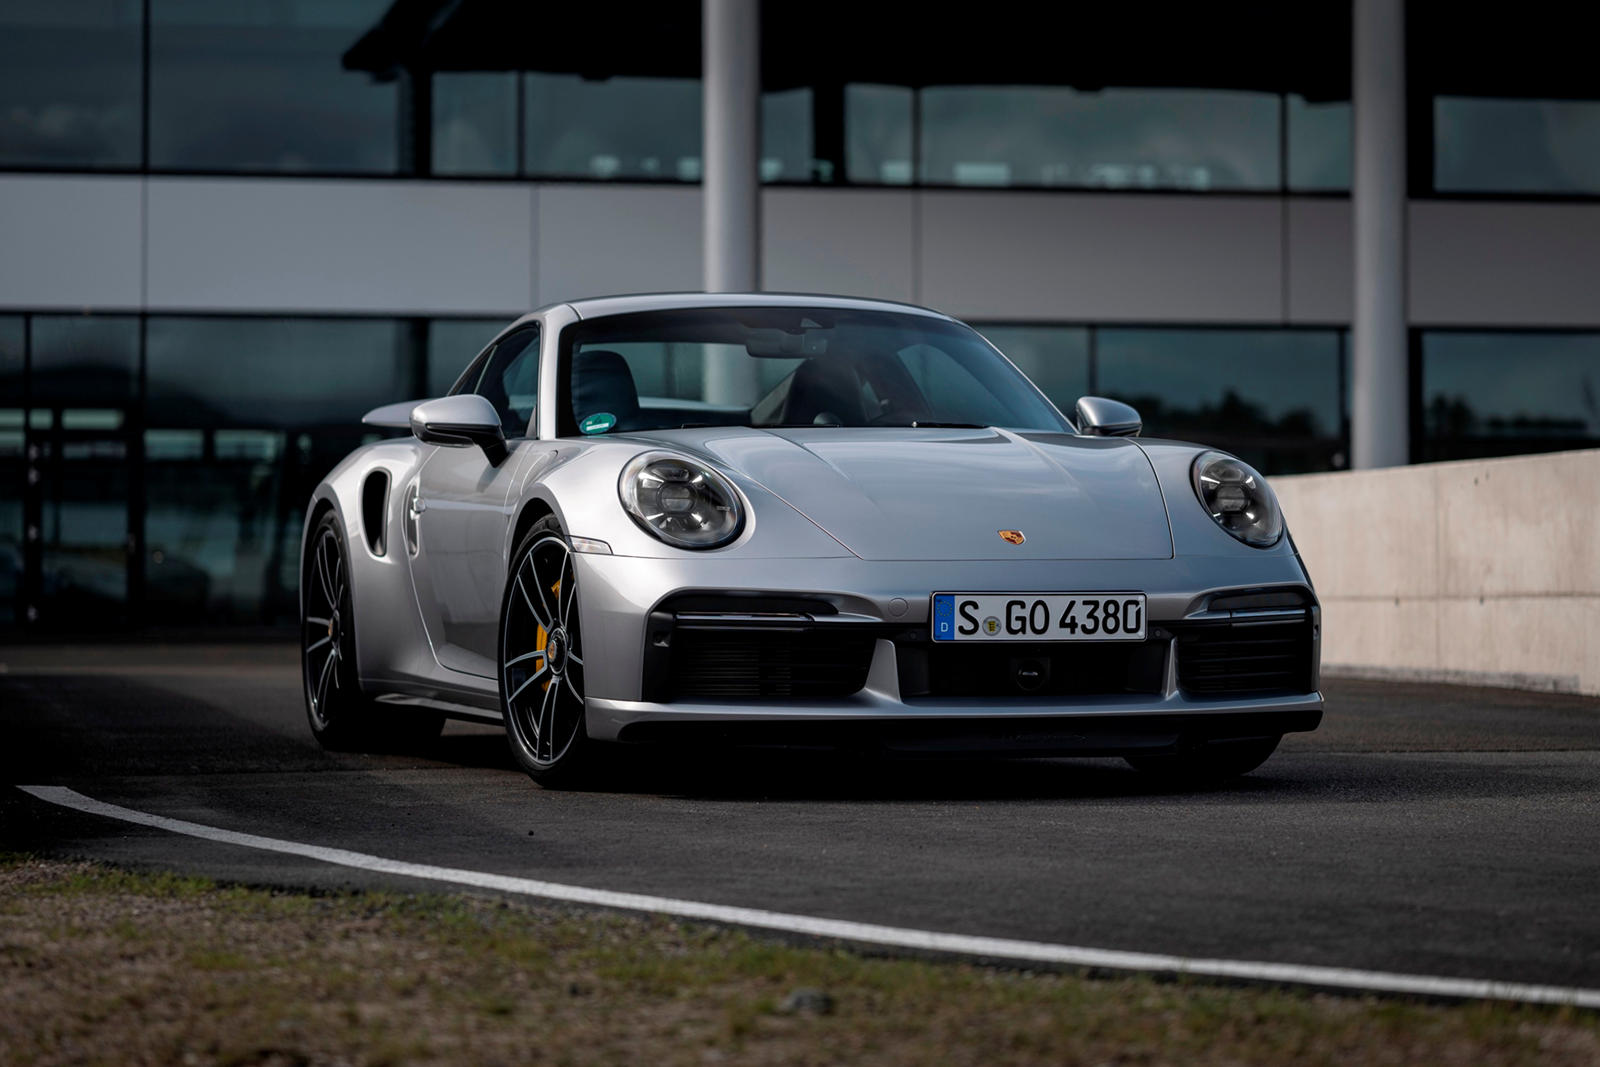 2021 Porsche 911 Turbo S First Drive Review: Daily Driver With Monster Performance